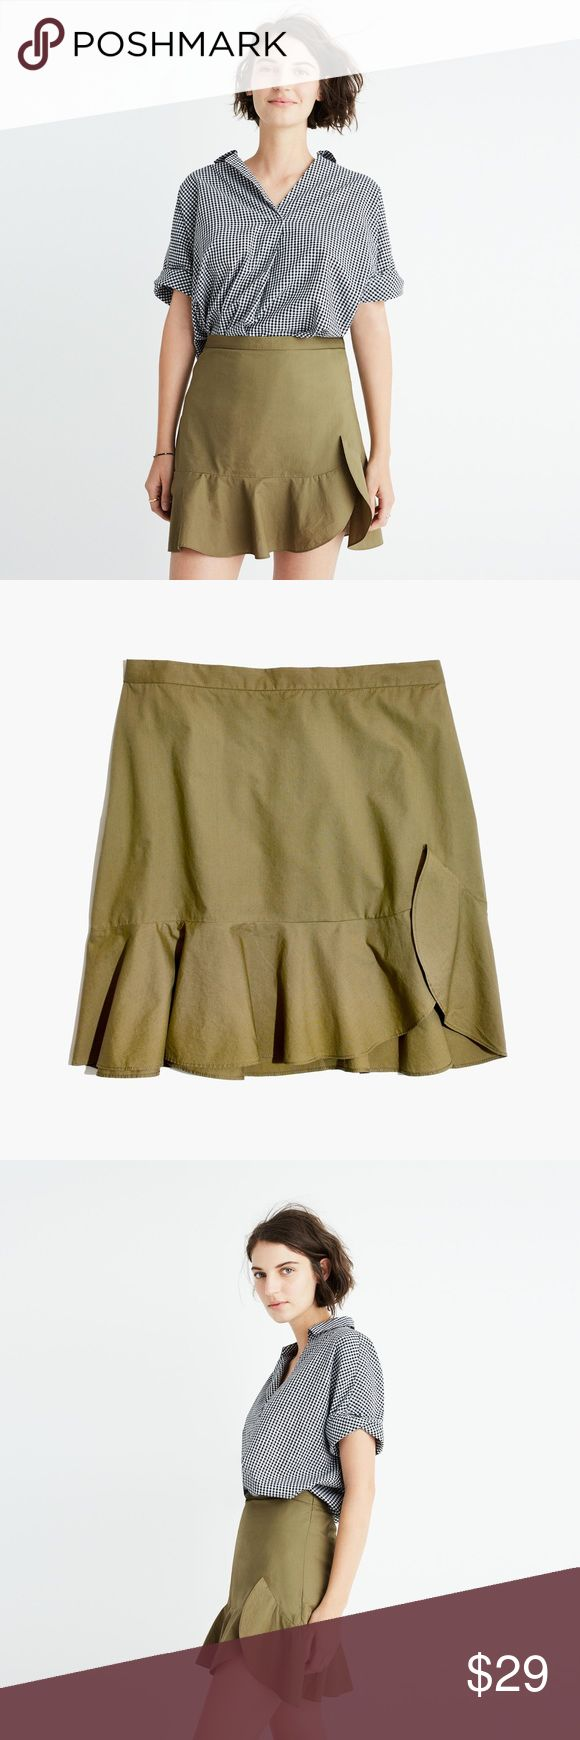 "New Madewell Ruffle-Wrap Mini Skirt Size 6 Brand new with tags Madewell ruffle-wrap mini skirt in olive color, size 6. Super cute A-line style. 16 1/4"" long. Cotton, machine washable. Originally $78. Madewell Skirts Mini"